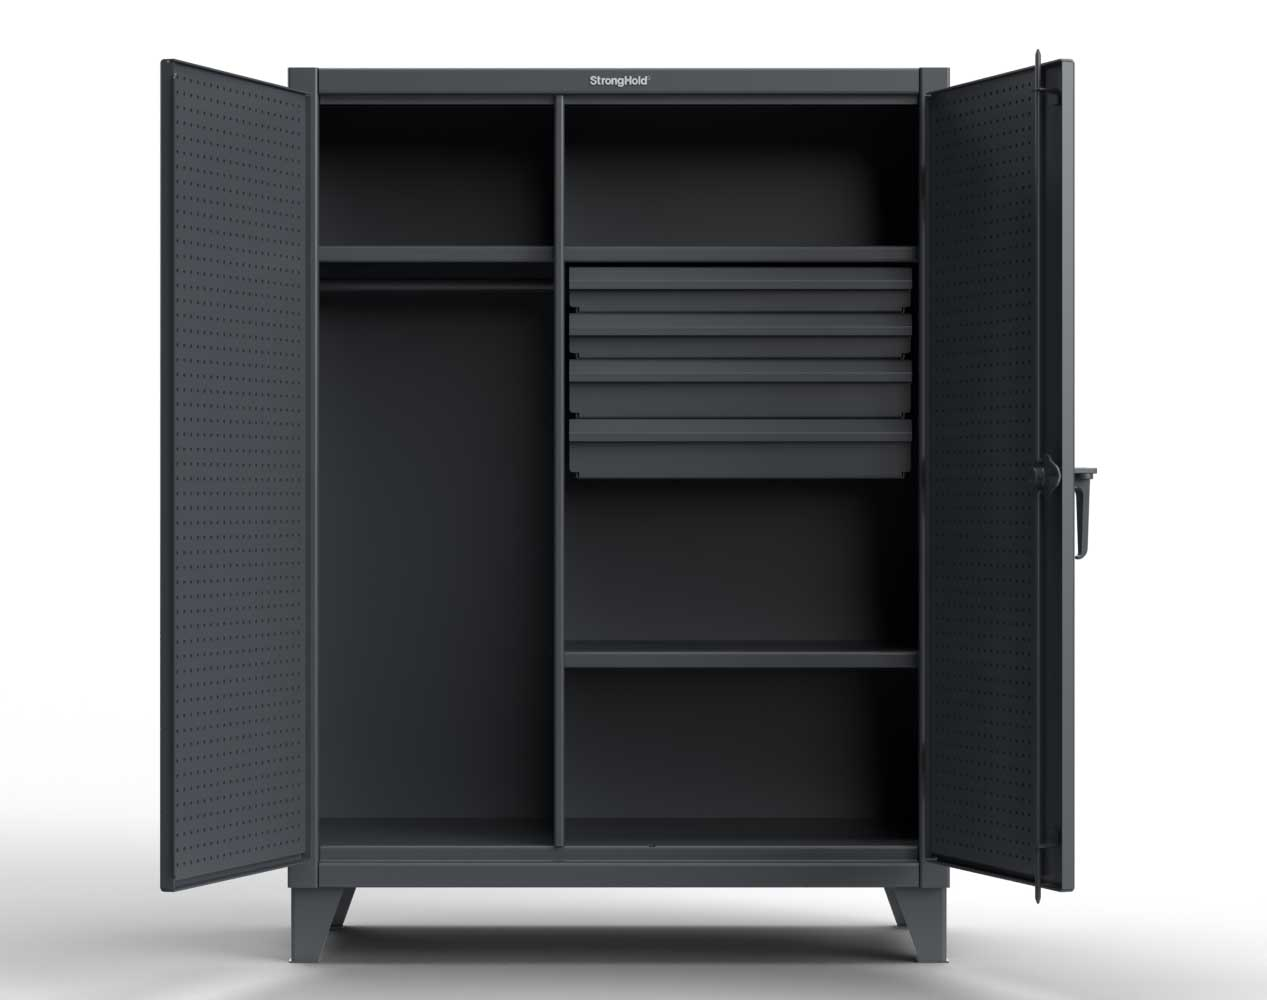 Extra Heavy Duty 12 GA Wardrobe Cabinet with 4 Drawers, Pegboard, 4 Shelves – 36 In. W x 24 In. D x 78 In. H